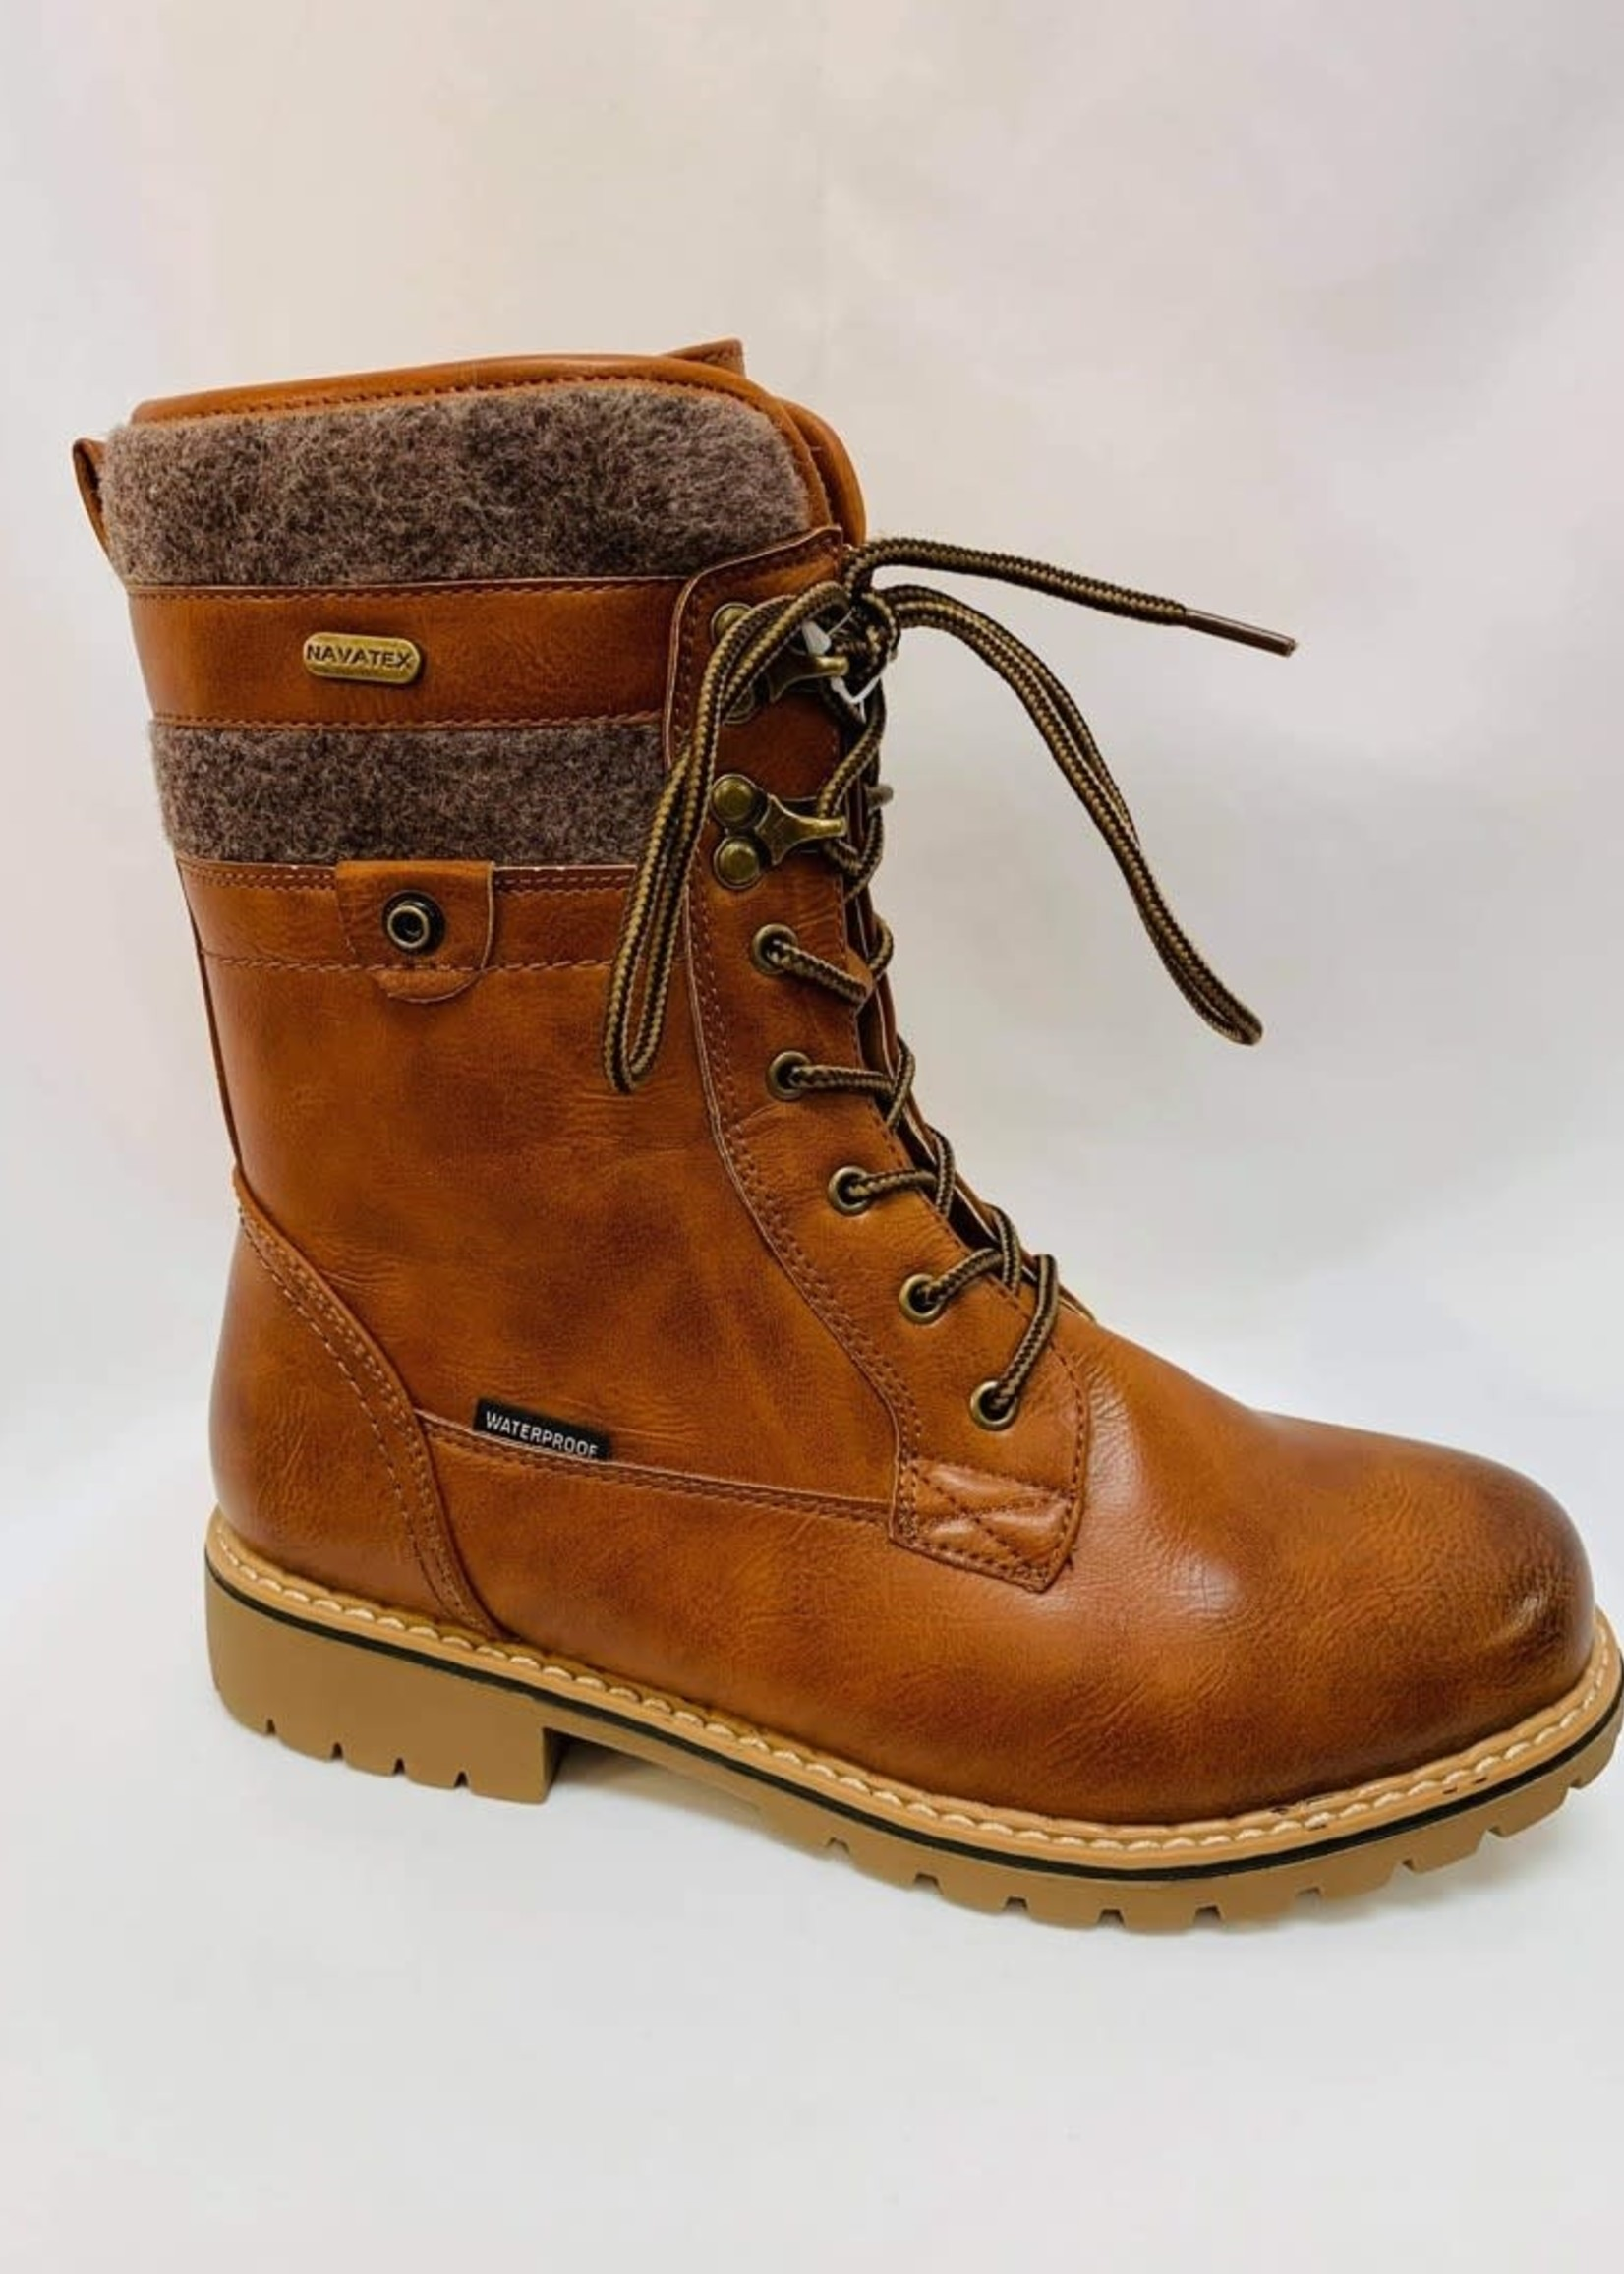 Navatex Ladies Boots